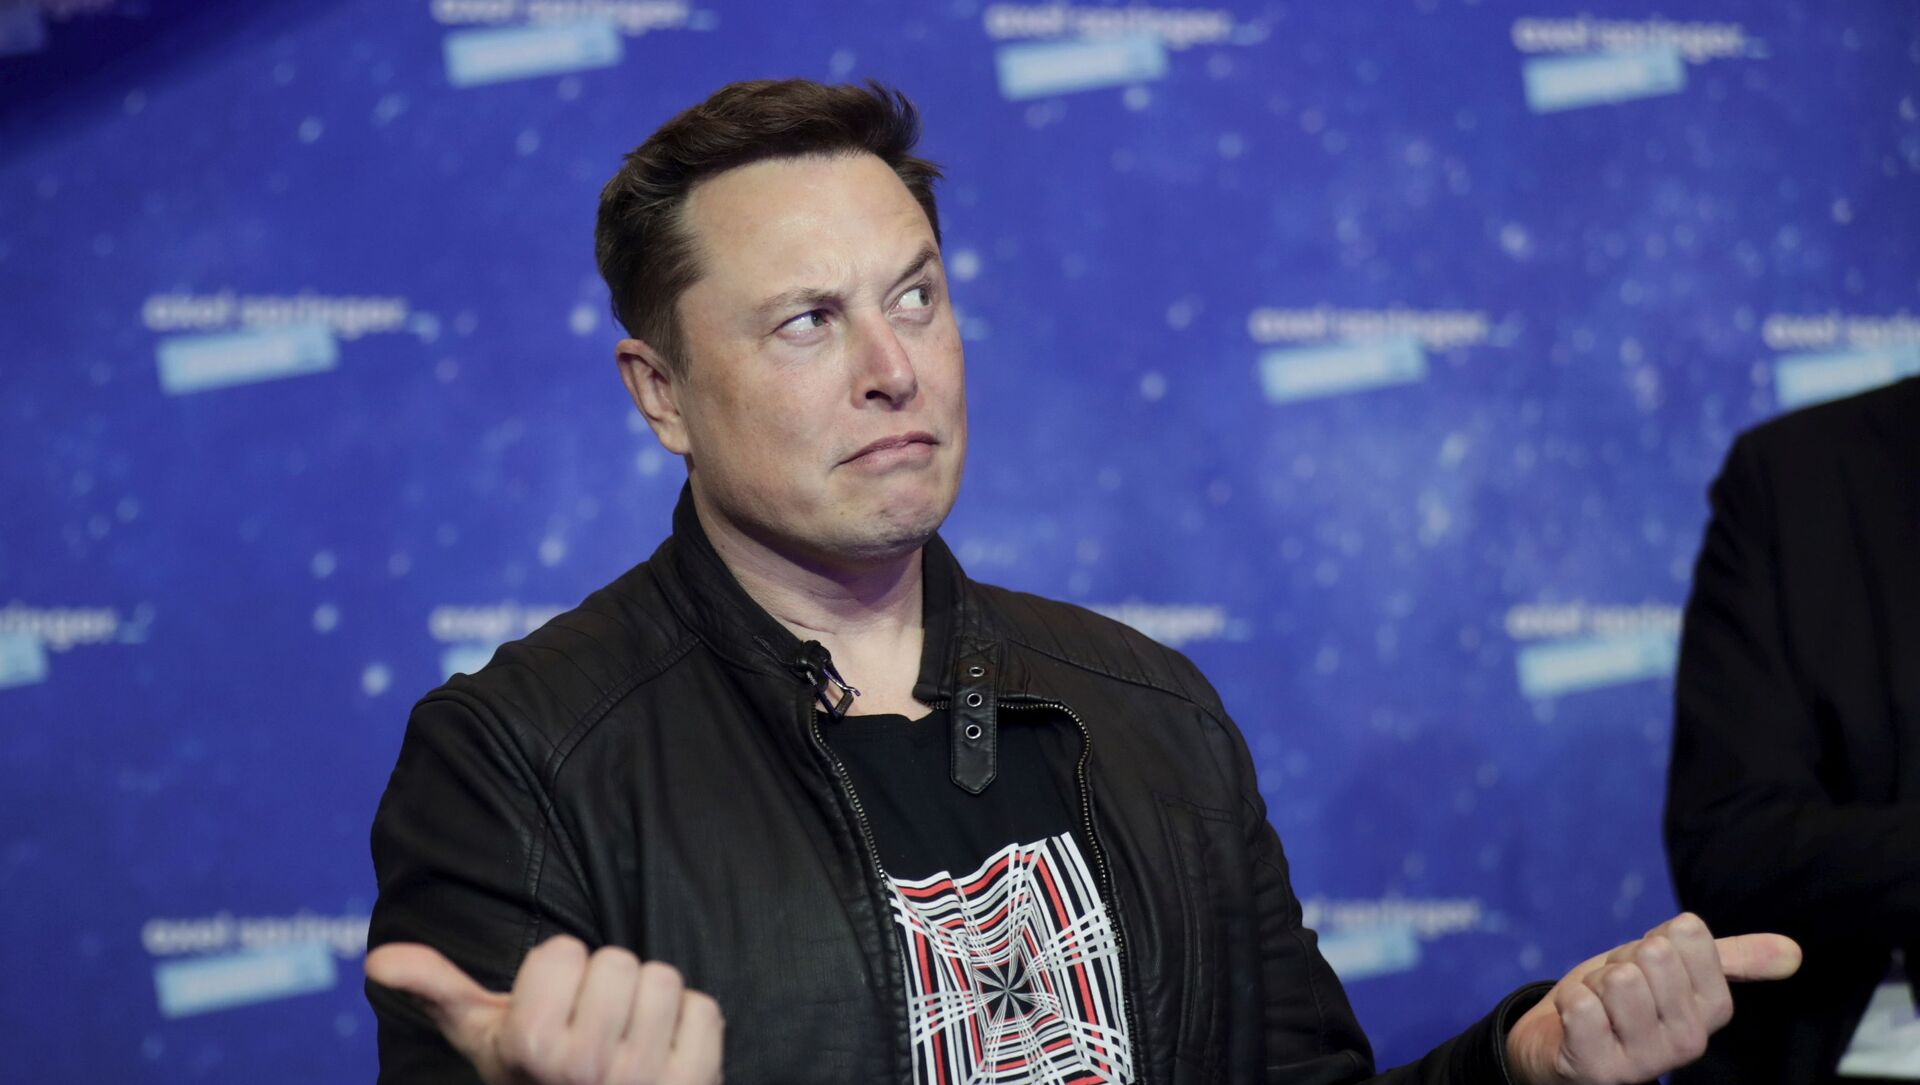 SpaceX owner and Tesla CEO Elon Musk arrives on the red carpet for the Axel Springer media award, in Berlin, Germany, Tuesday, 1 December 2020. - Sputnik International, 1920, 01.08.2021